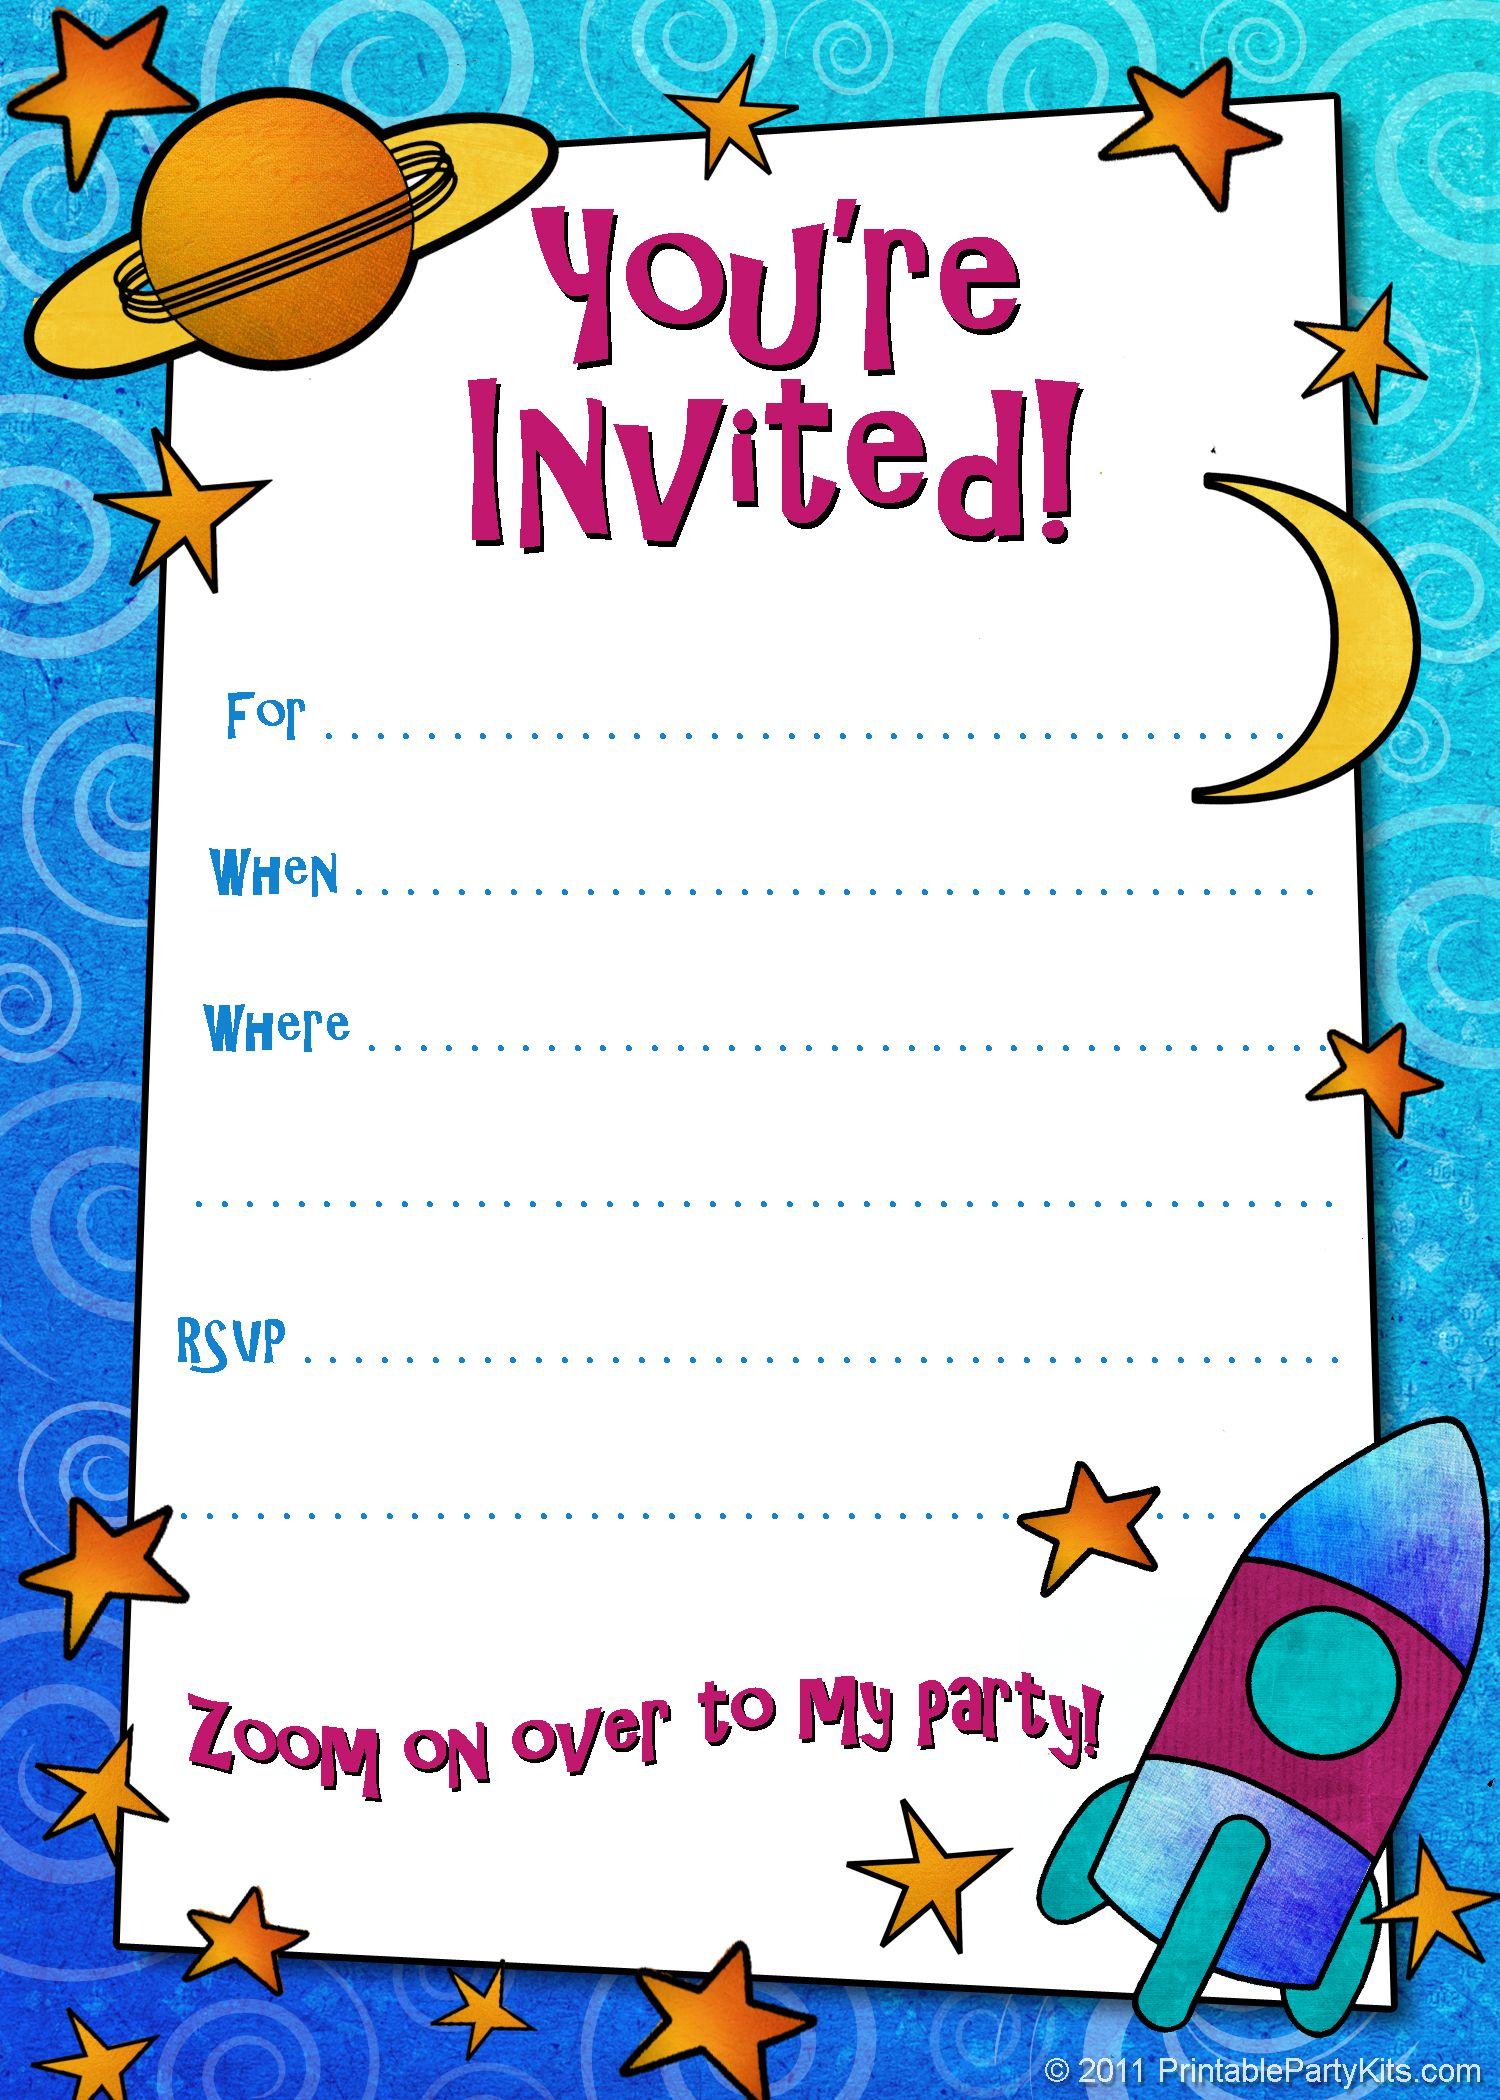 Printable kids invitations northurthwall printable kids invitations stopboris Choice Image